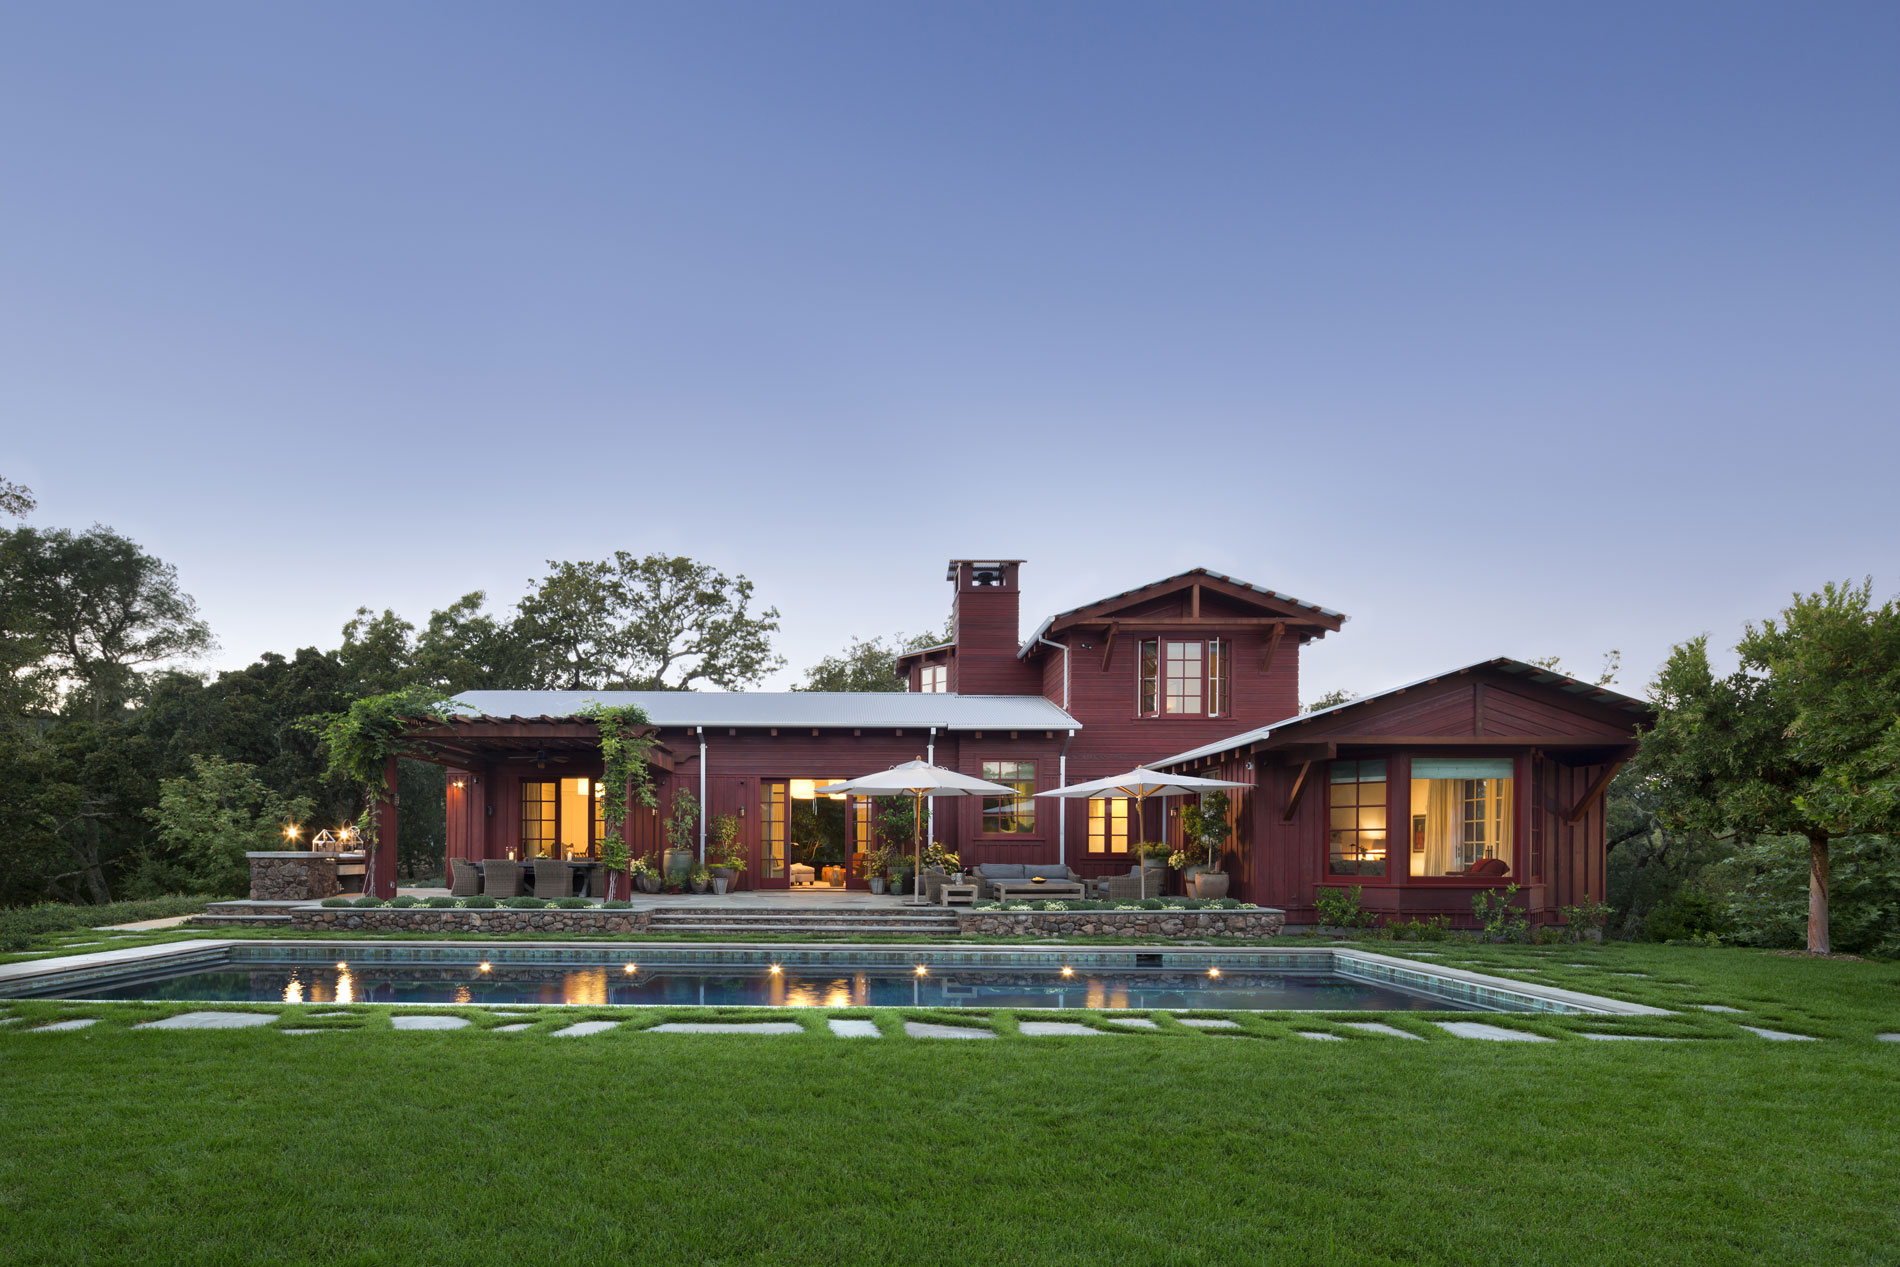 Evening view of the main house across the pool. (Photo credit: Peter Aaron/OTTO for Robert A.M. Stern Architects)